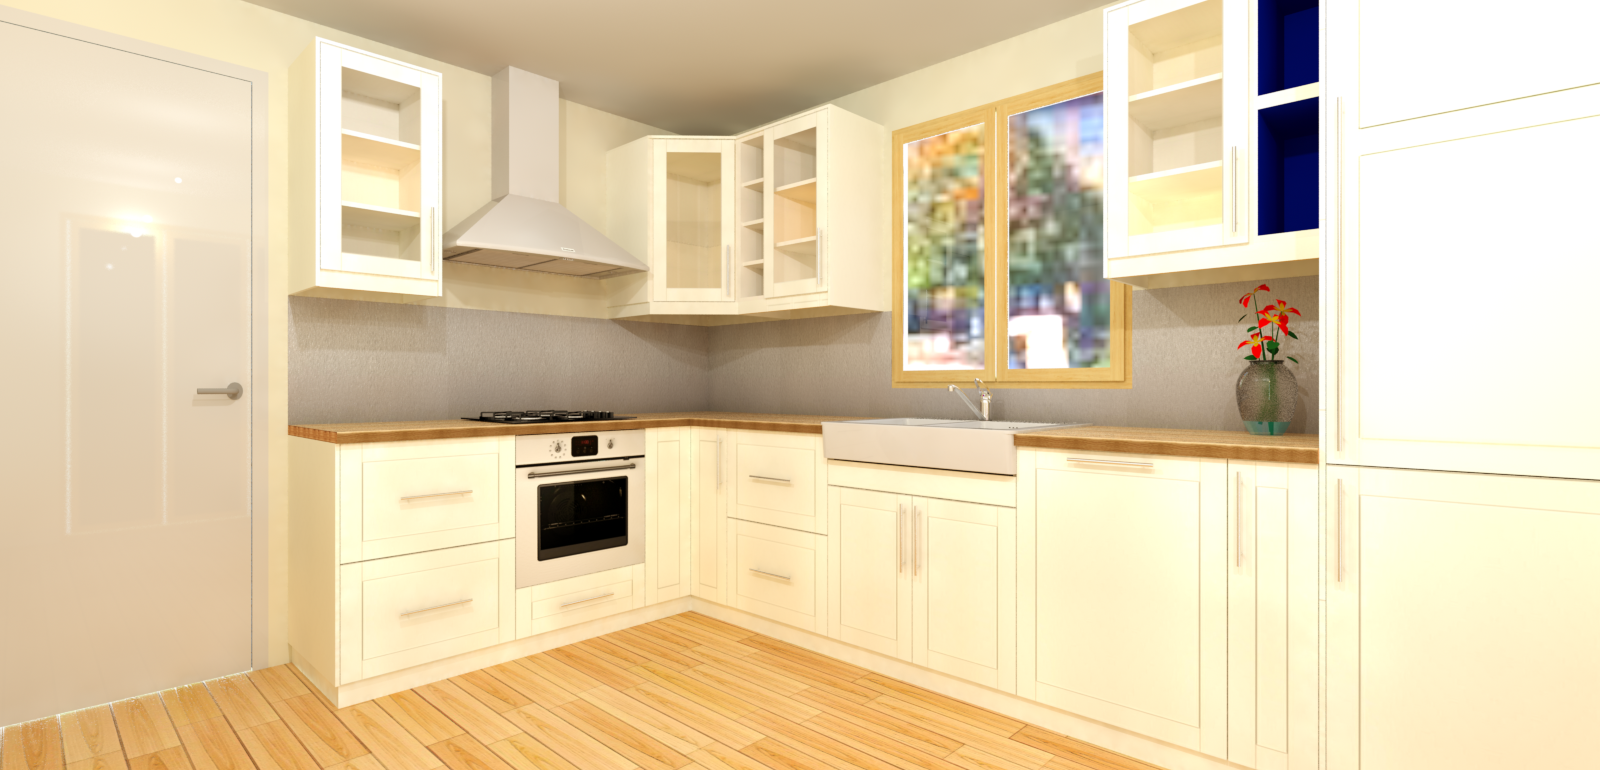 Ikea Kitchen Sketchup Models